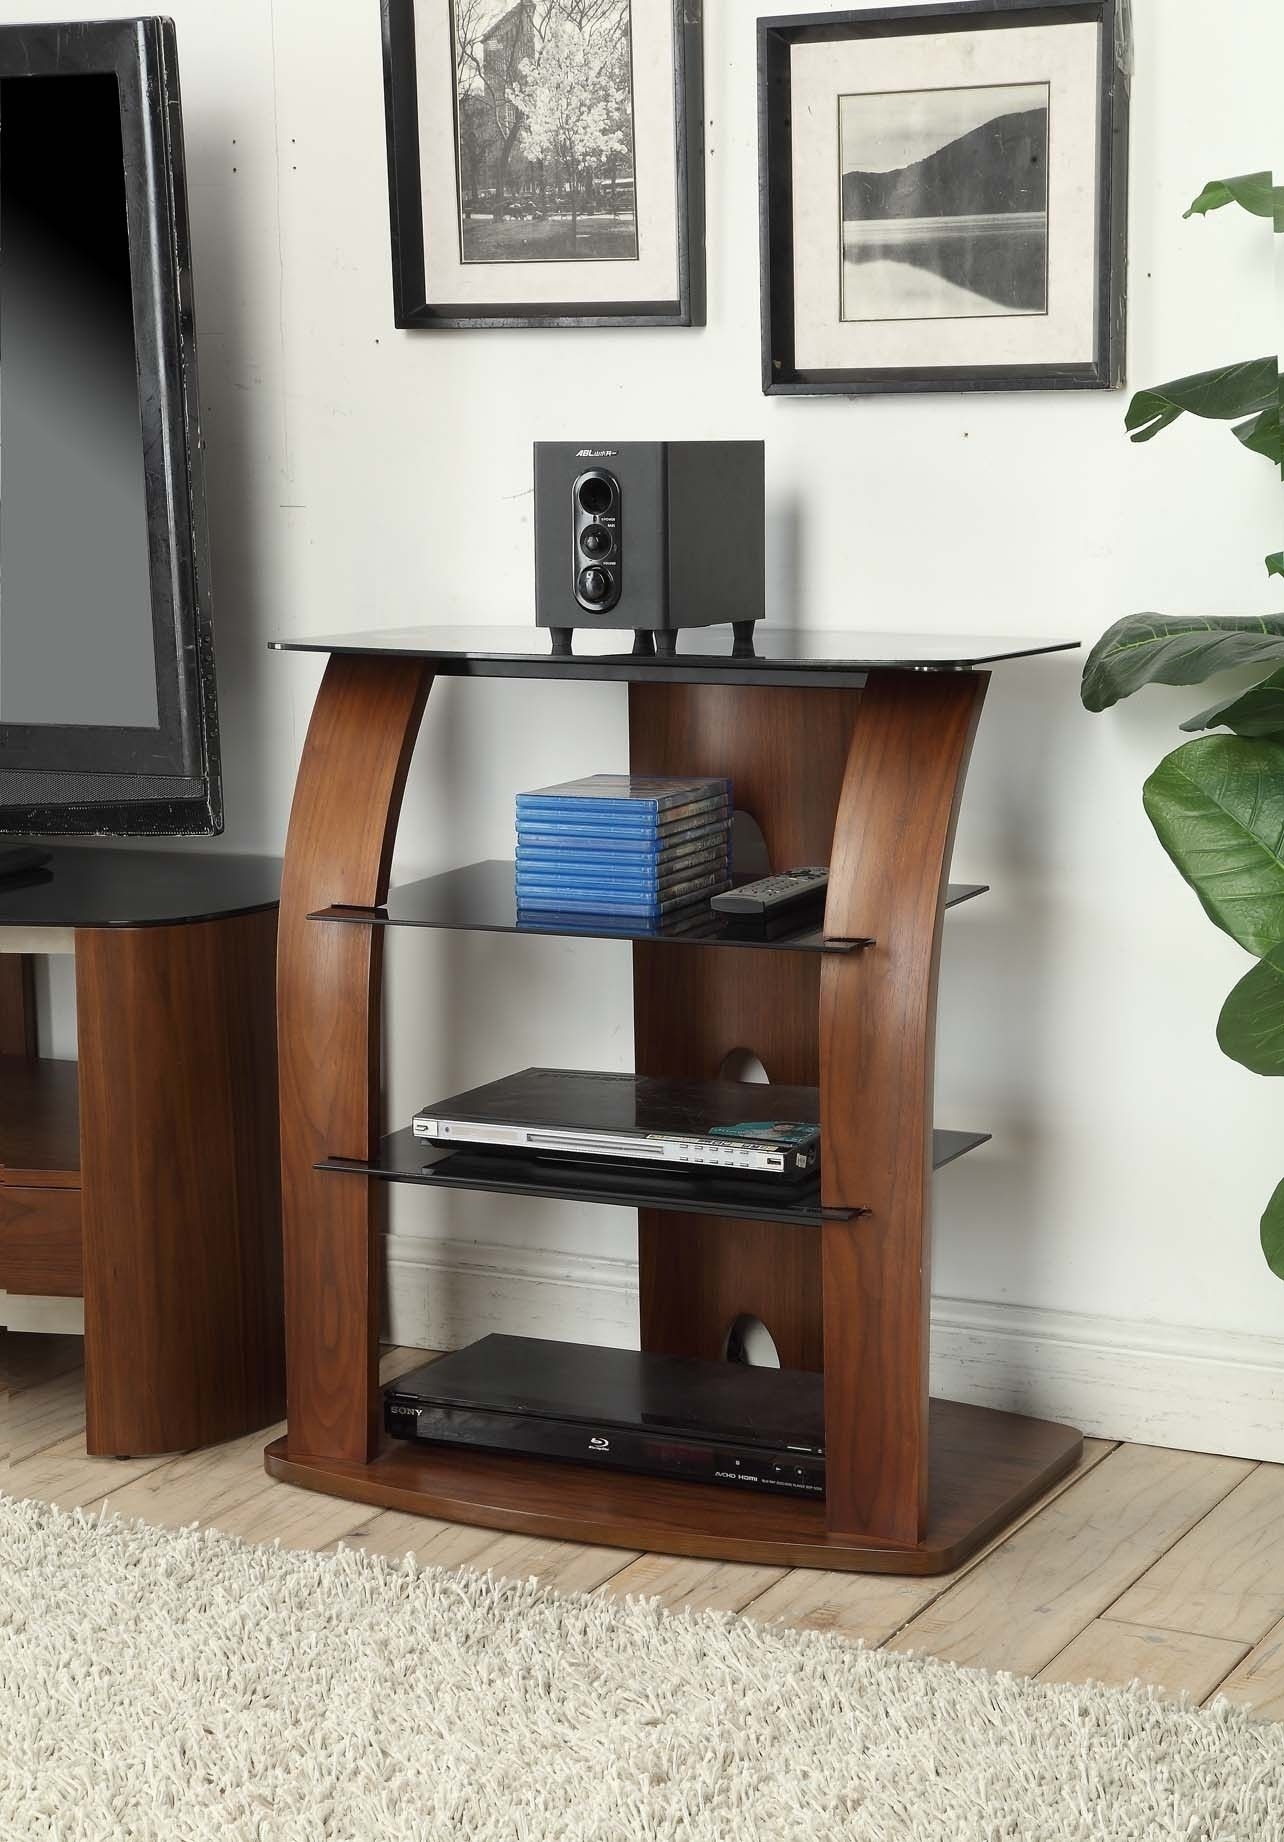 Jual Furnishings JF313 Entertainment Unit HiFi Stereo Stand In Real Walnut This stunning entertainment unit is & Jual Furnishings JF313 Entertainment Unit HiFi Stereo Stand In Real ...